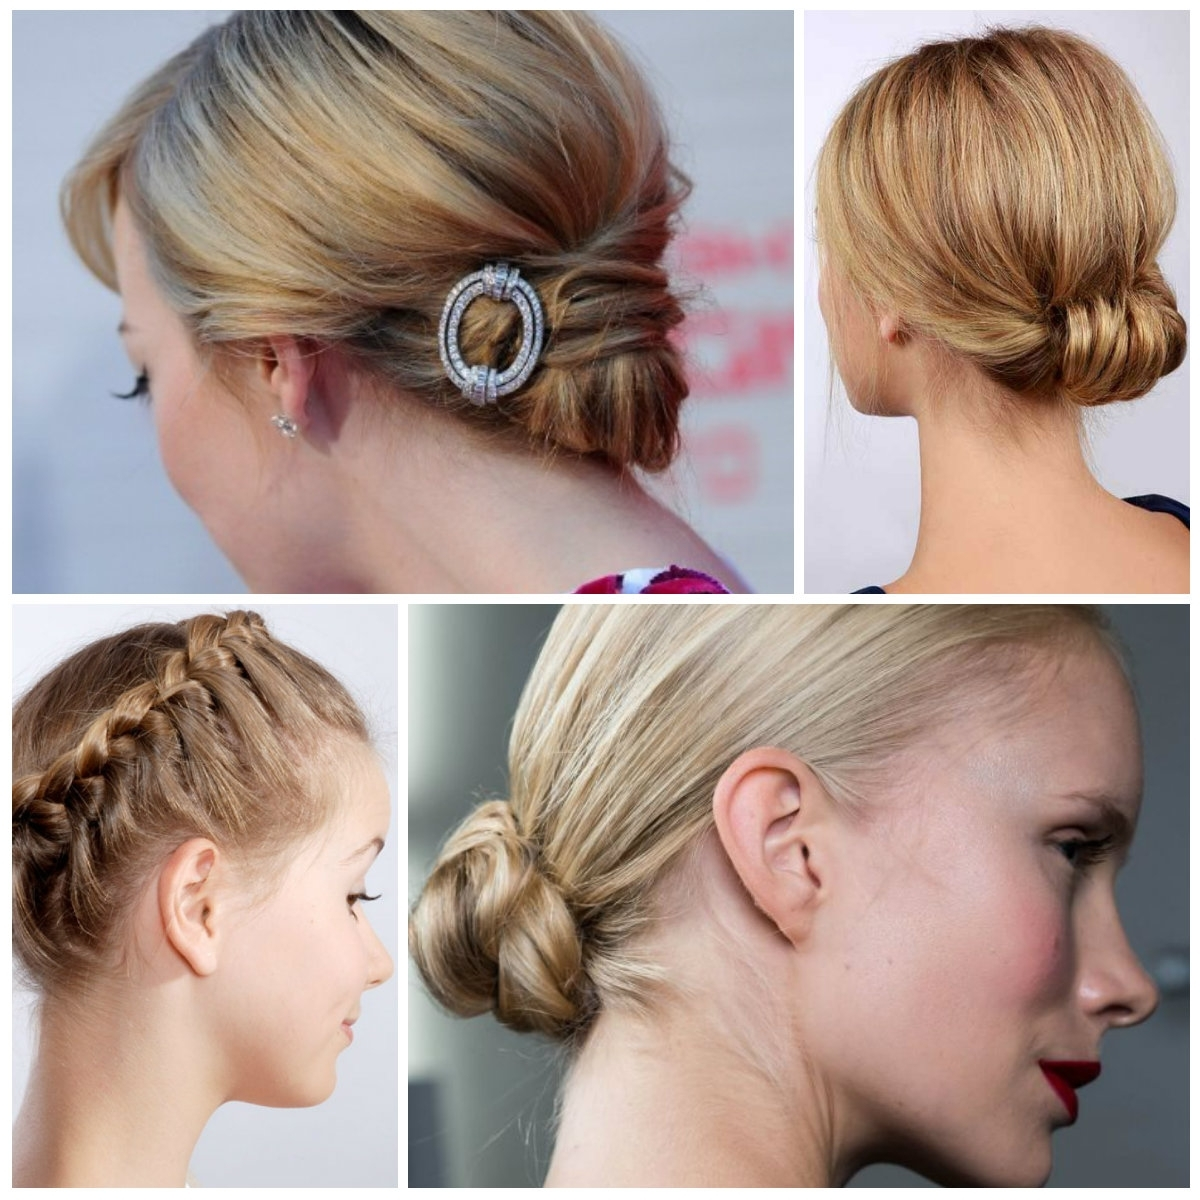 Cute Updo Hairstyles For Short Hair 90 For Your Ideas With Updo With Cute Updo Hairstyles For Short Hair (View 6 of 15)